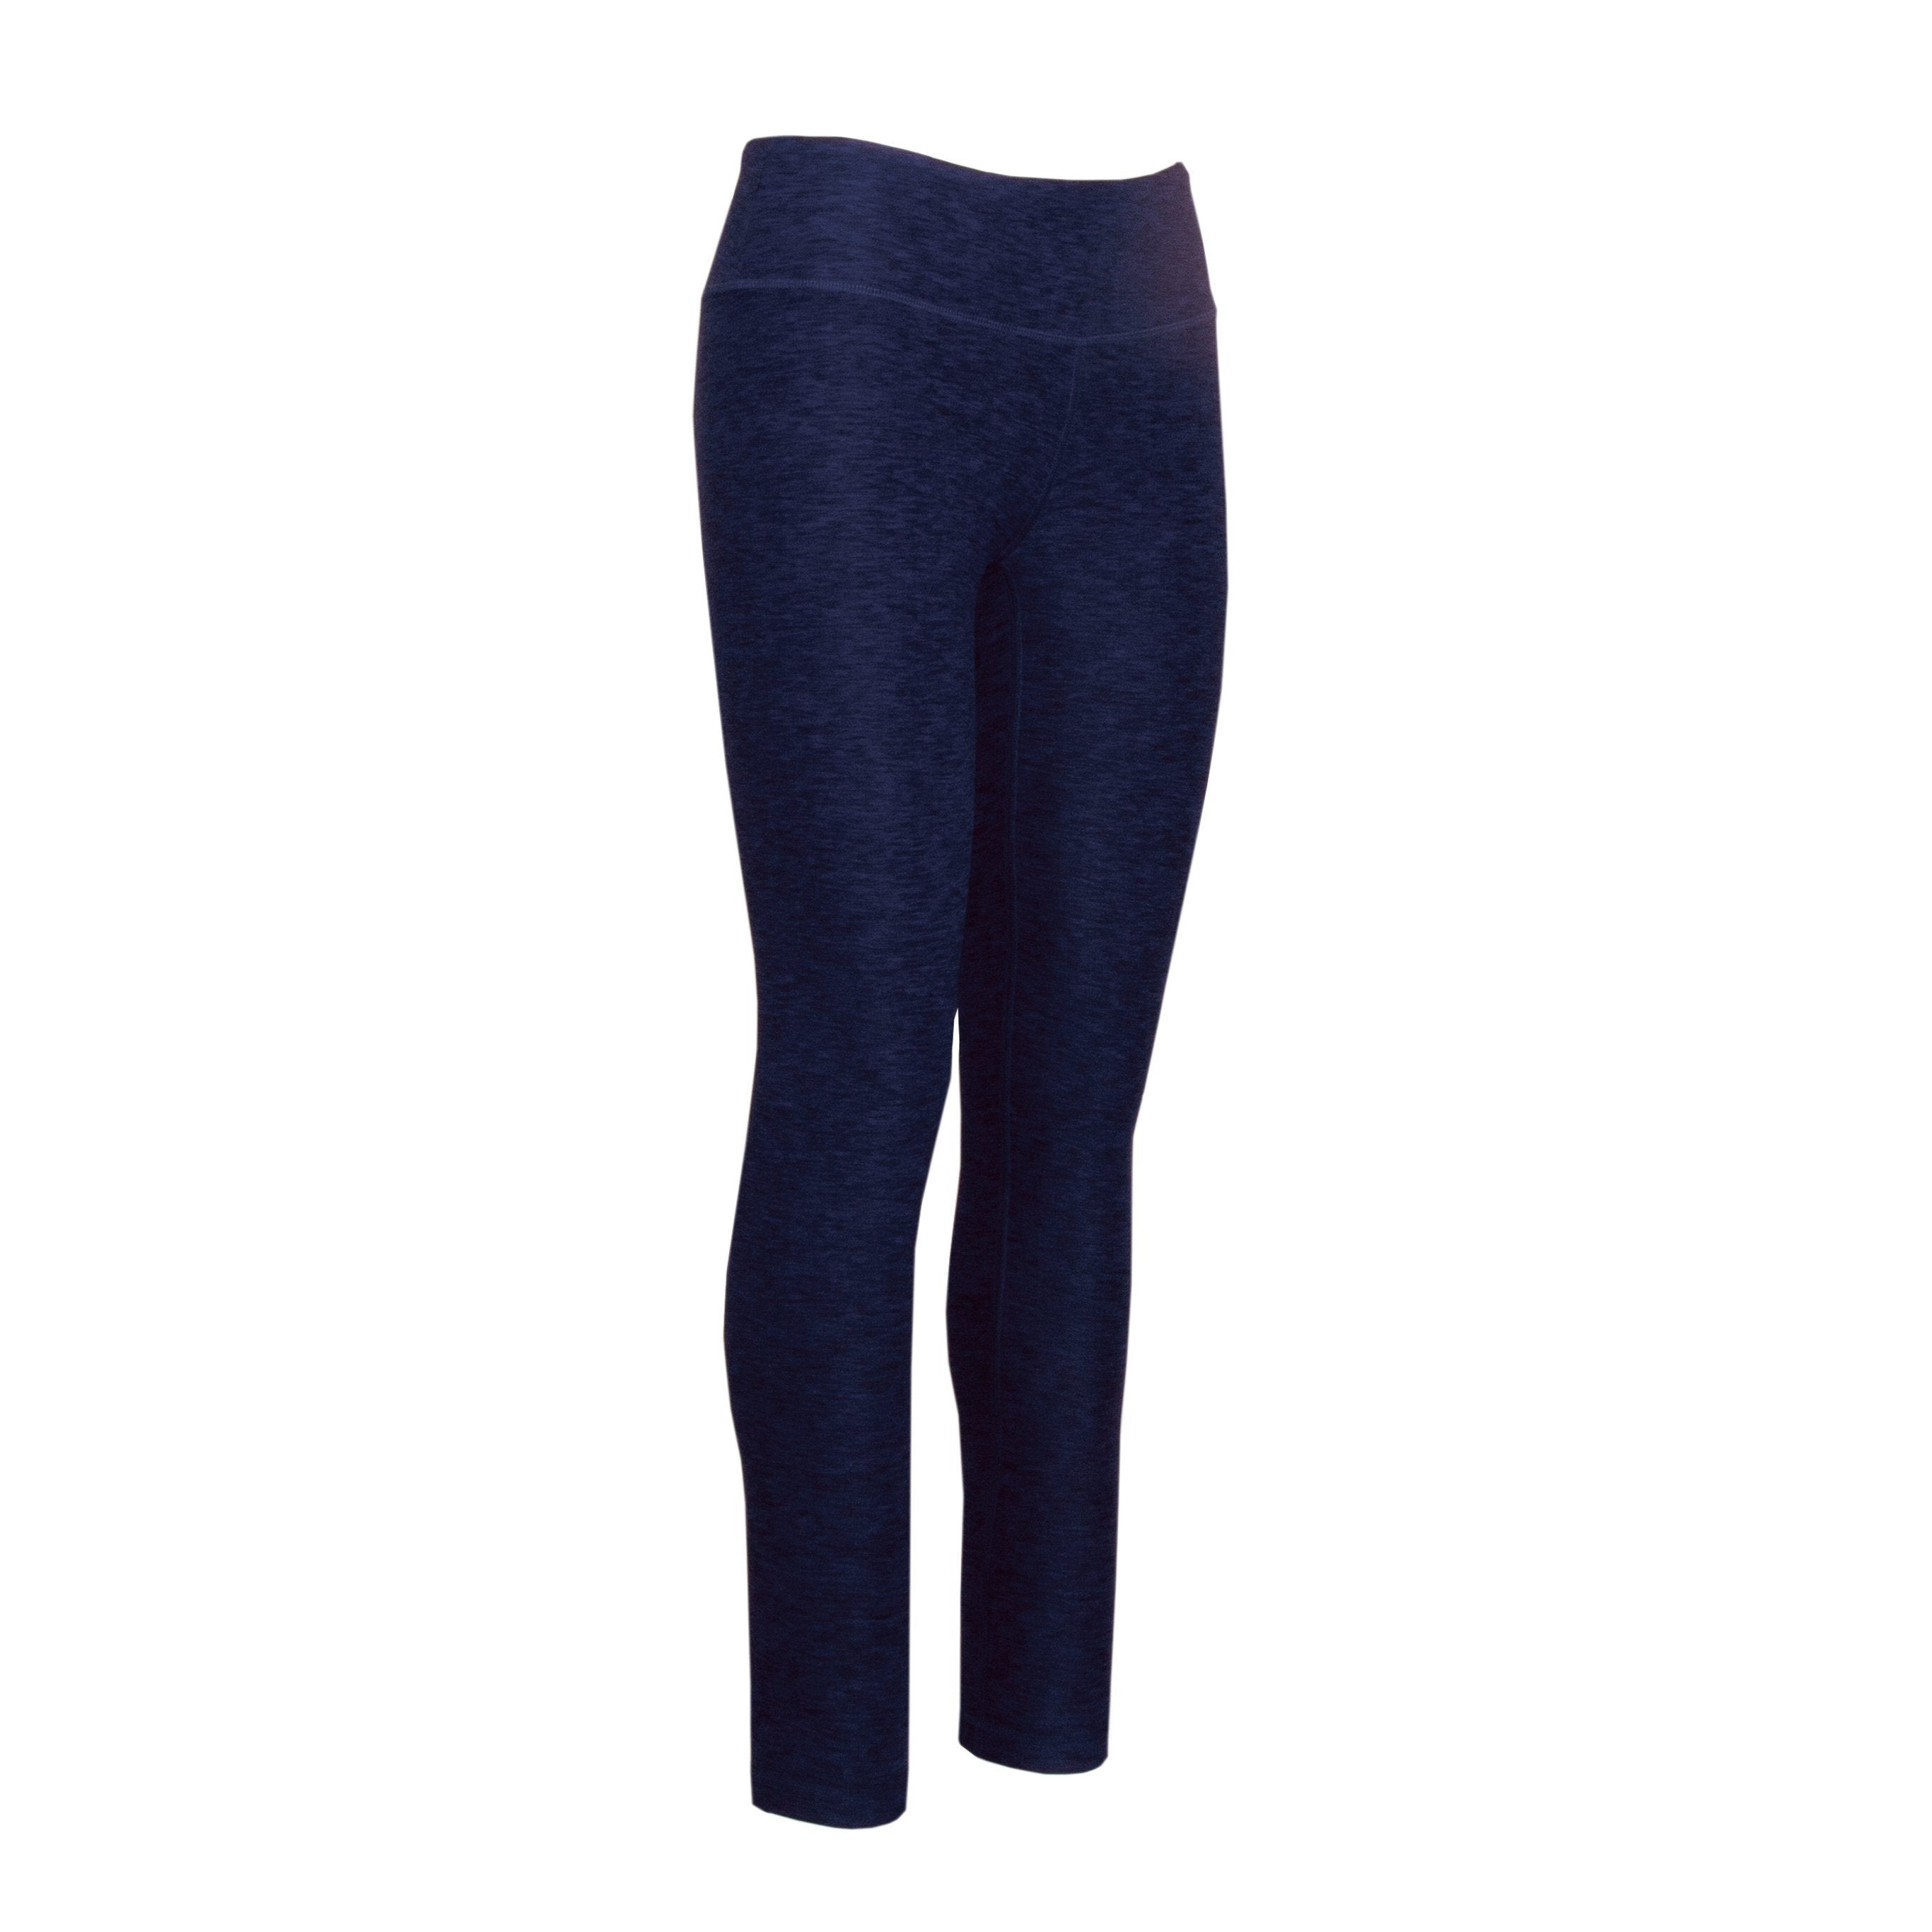 L600PC Heathered Leggings Full Length - Pacific Blue